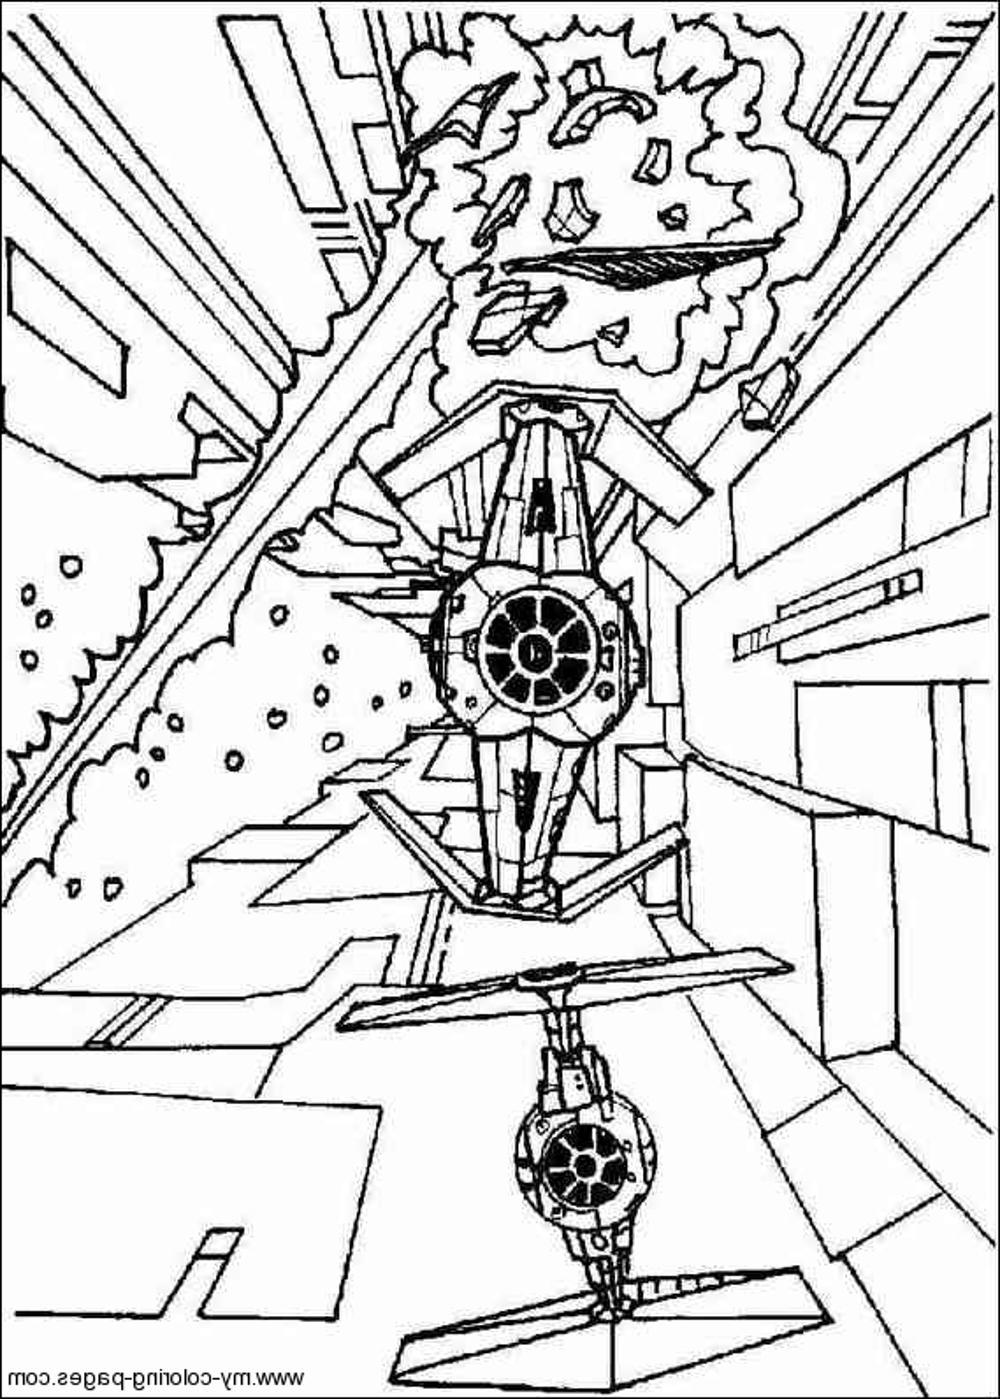 lego star wars coloring pages free lego star wars coloring pages free printable lego star free pages star wars coloring lego